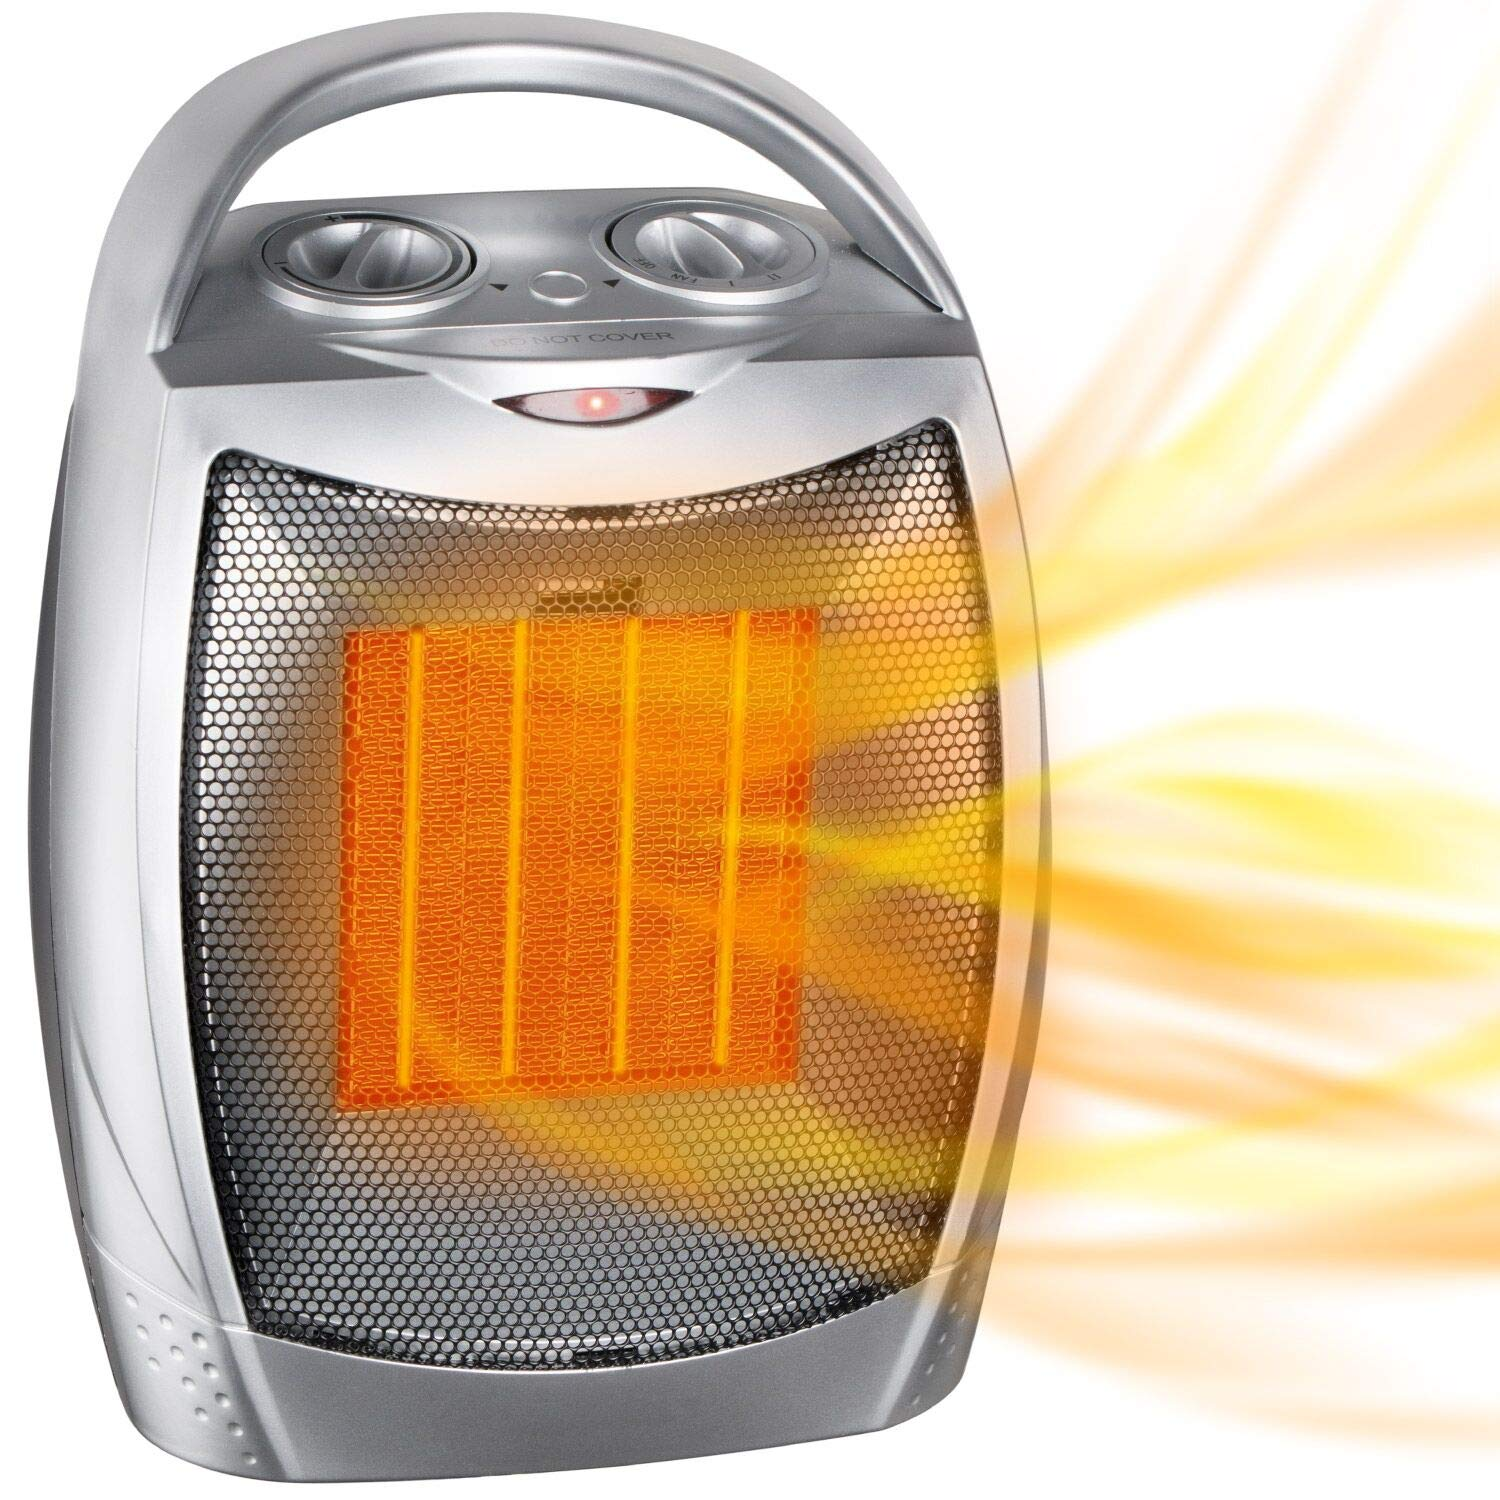 GiveBest Portable Electric Space Heater